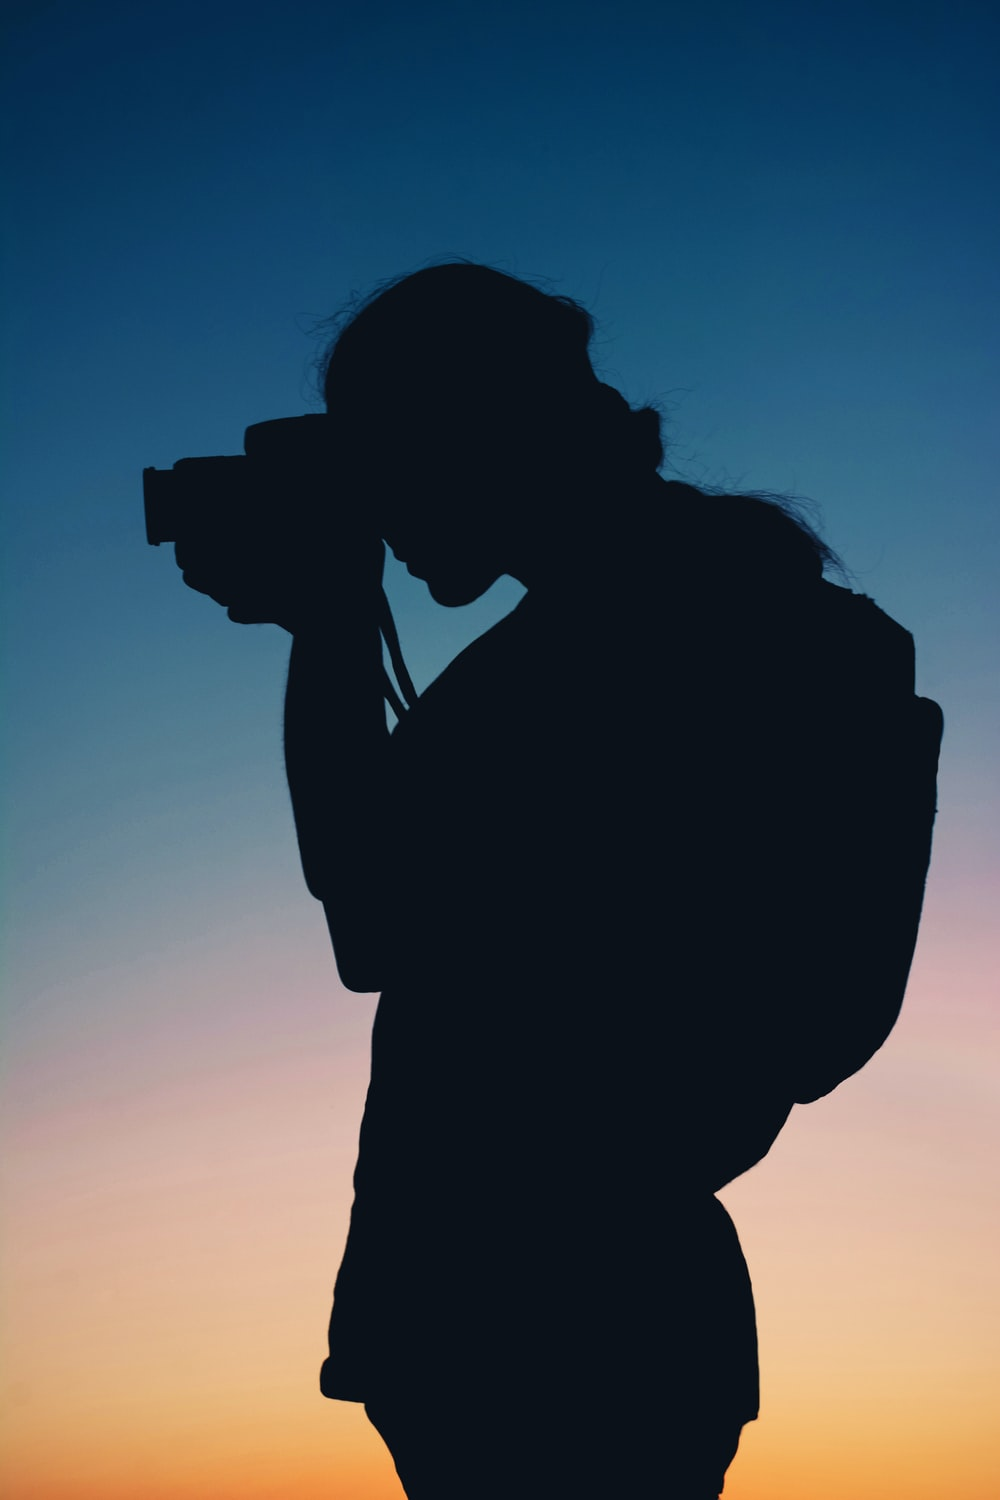 silhouette of person using camera